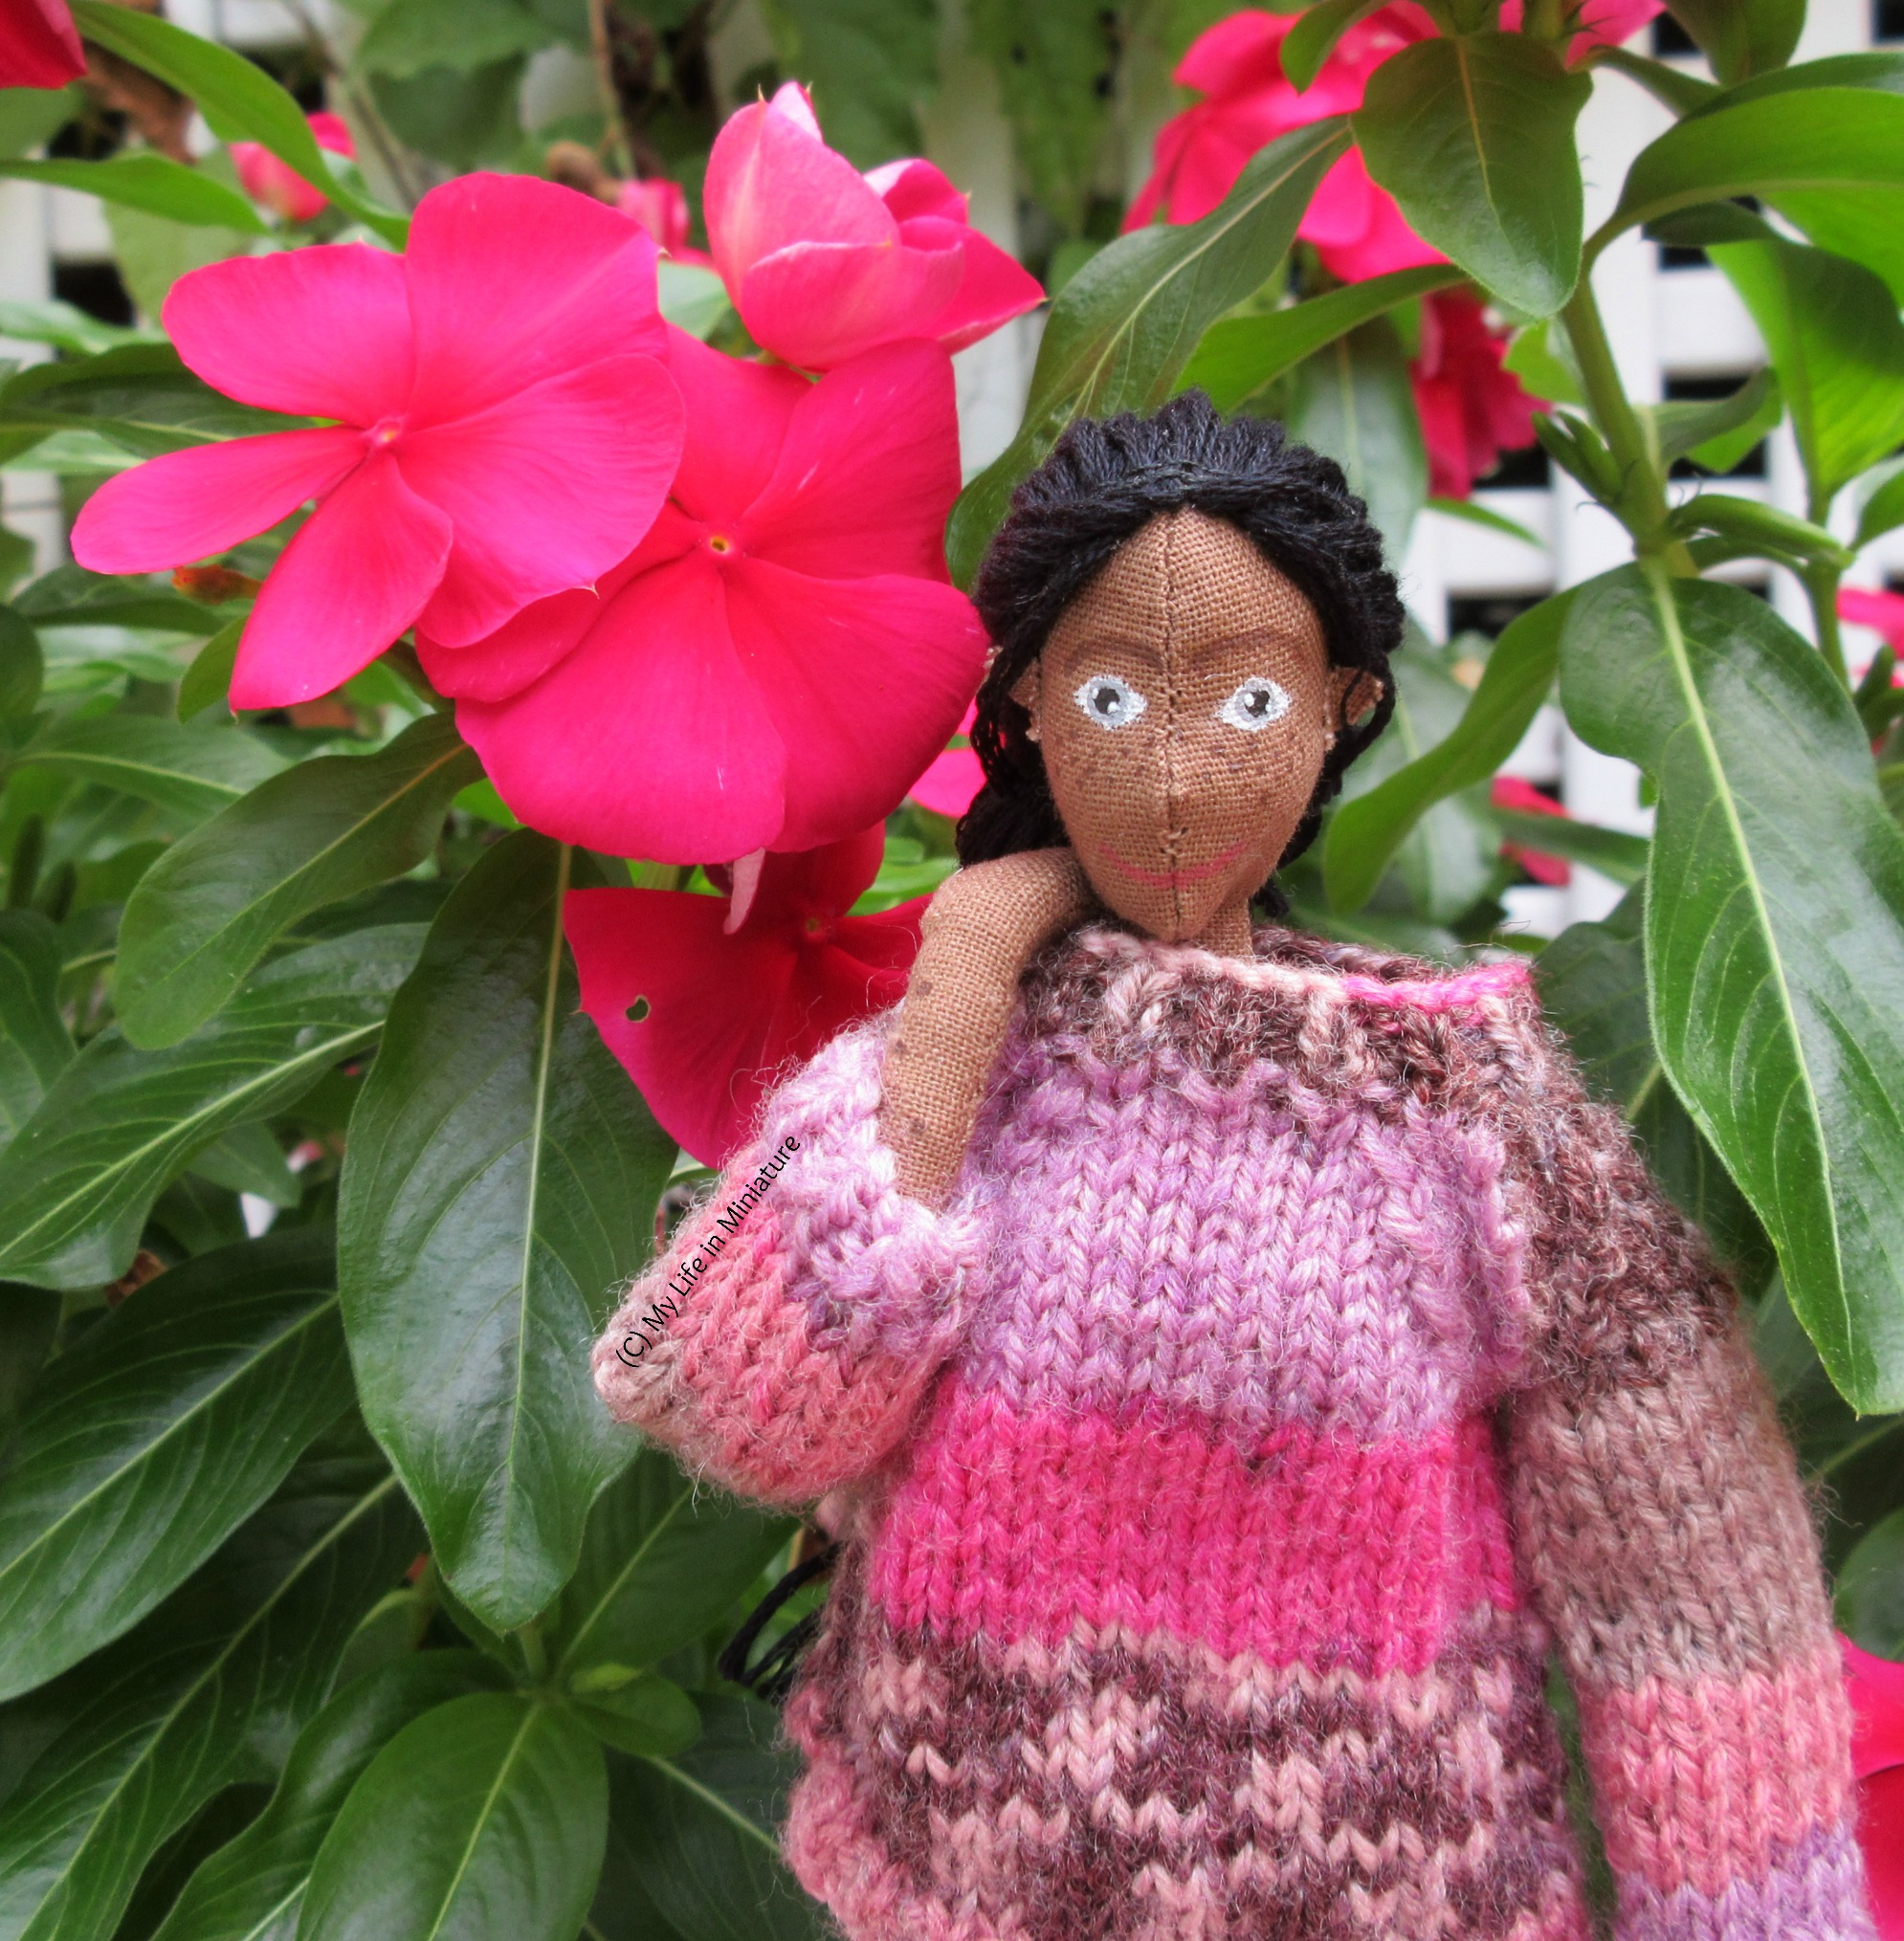 Petra is next to a hot pink viola flower, one hand on her shoulder. She's looking at the camera, and the sleeve of the jumper has come up a bit, showing freckles on her arm.